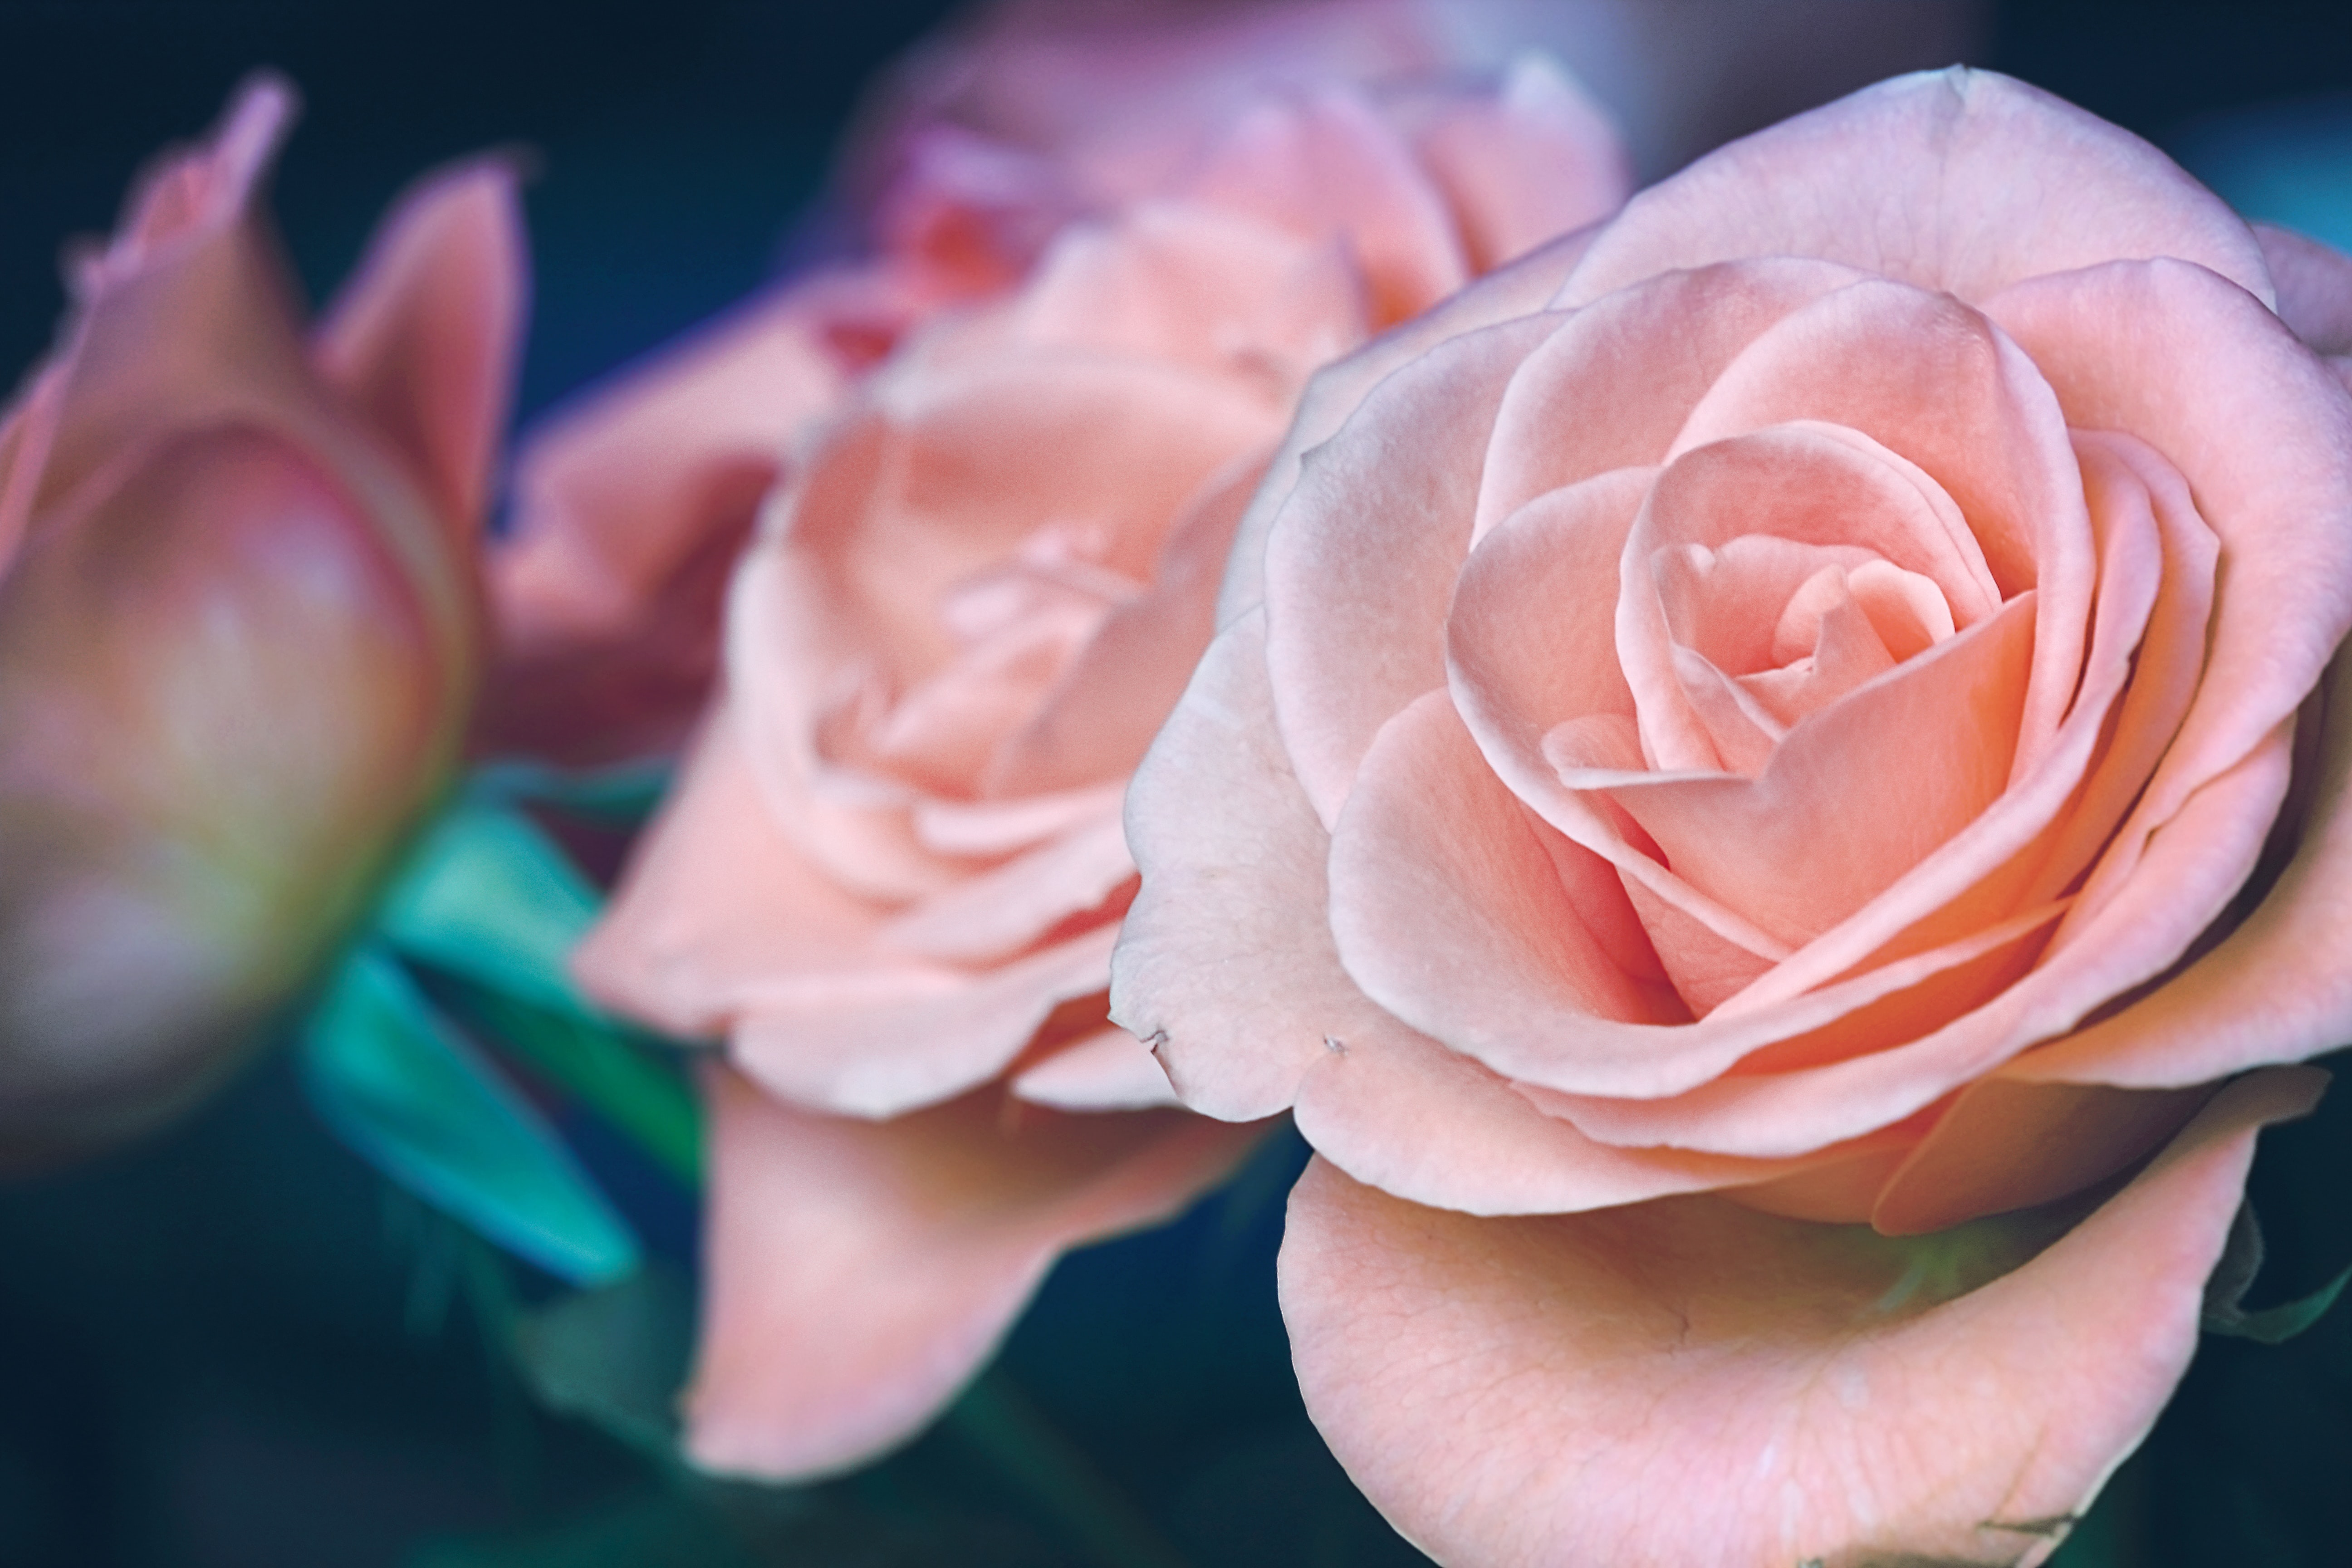 A close-up of pastel pink rose flowers